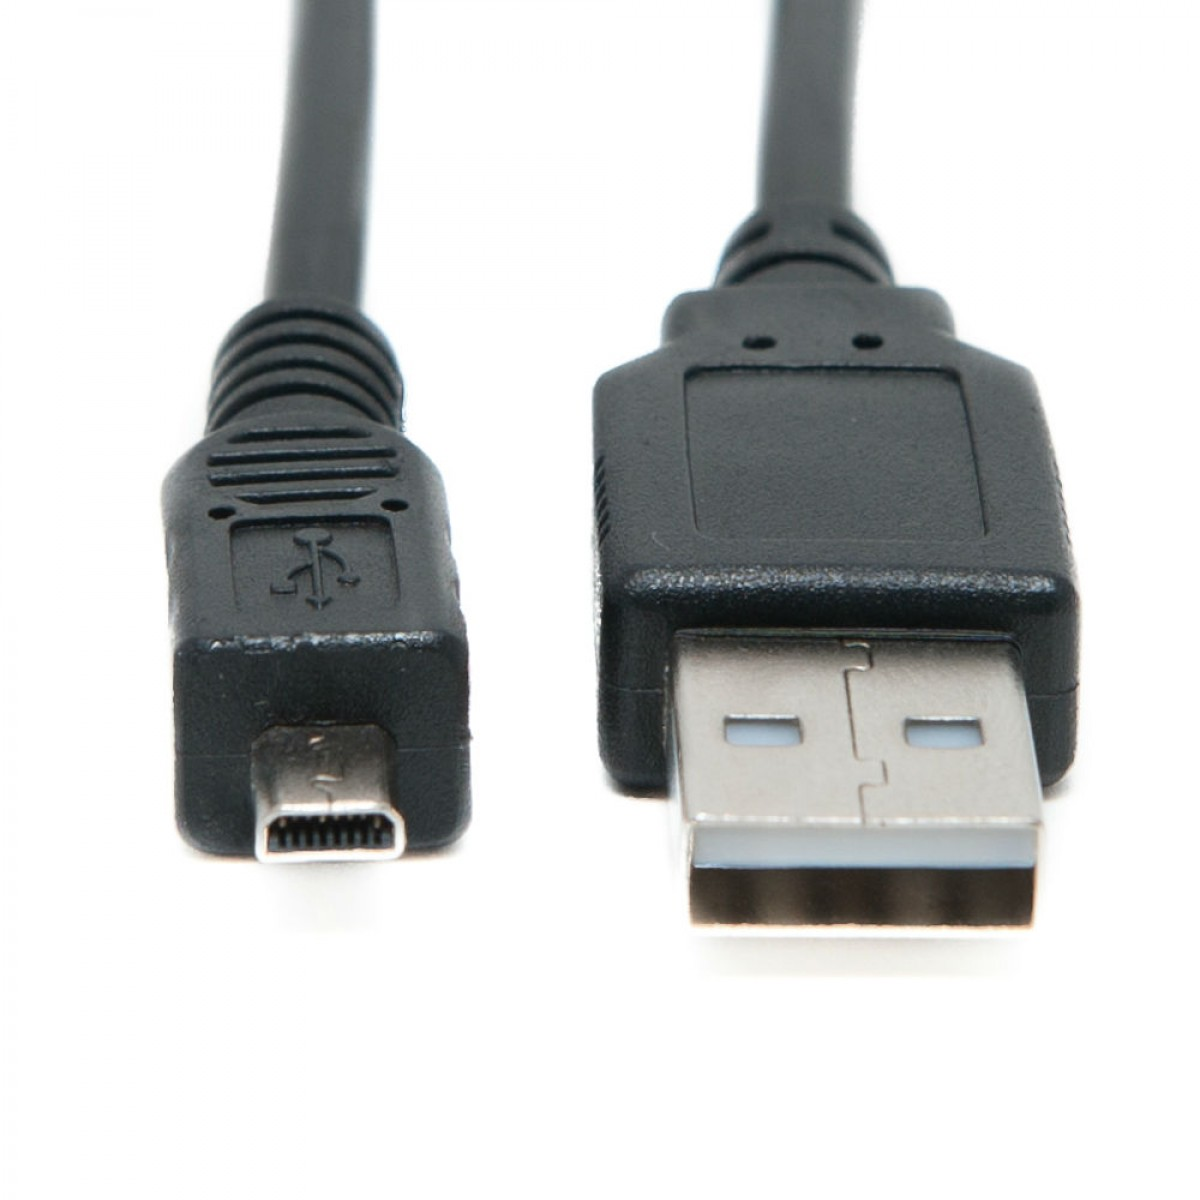 USB Data cable for Panasonic Lumix